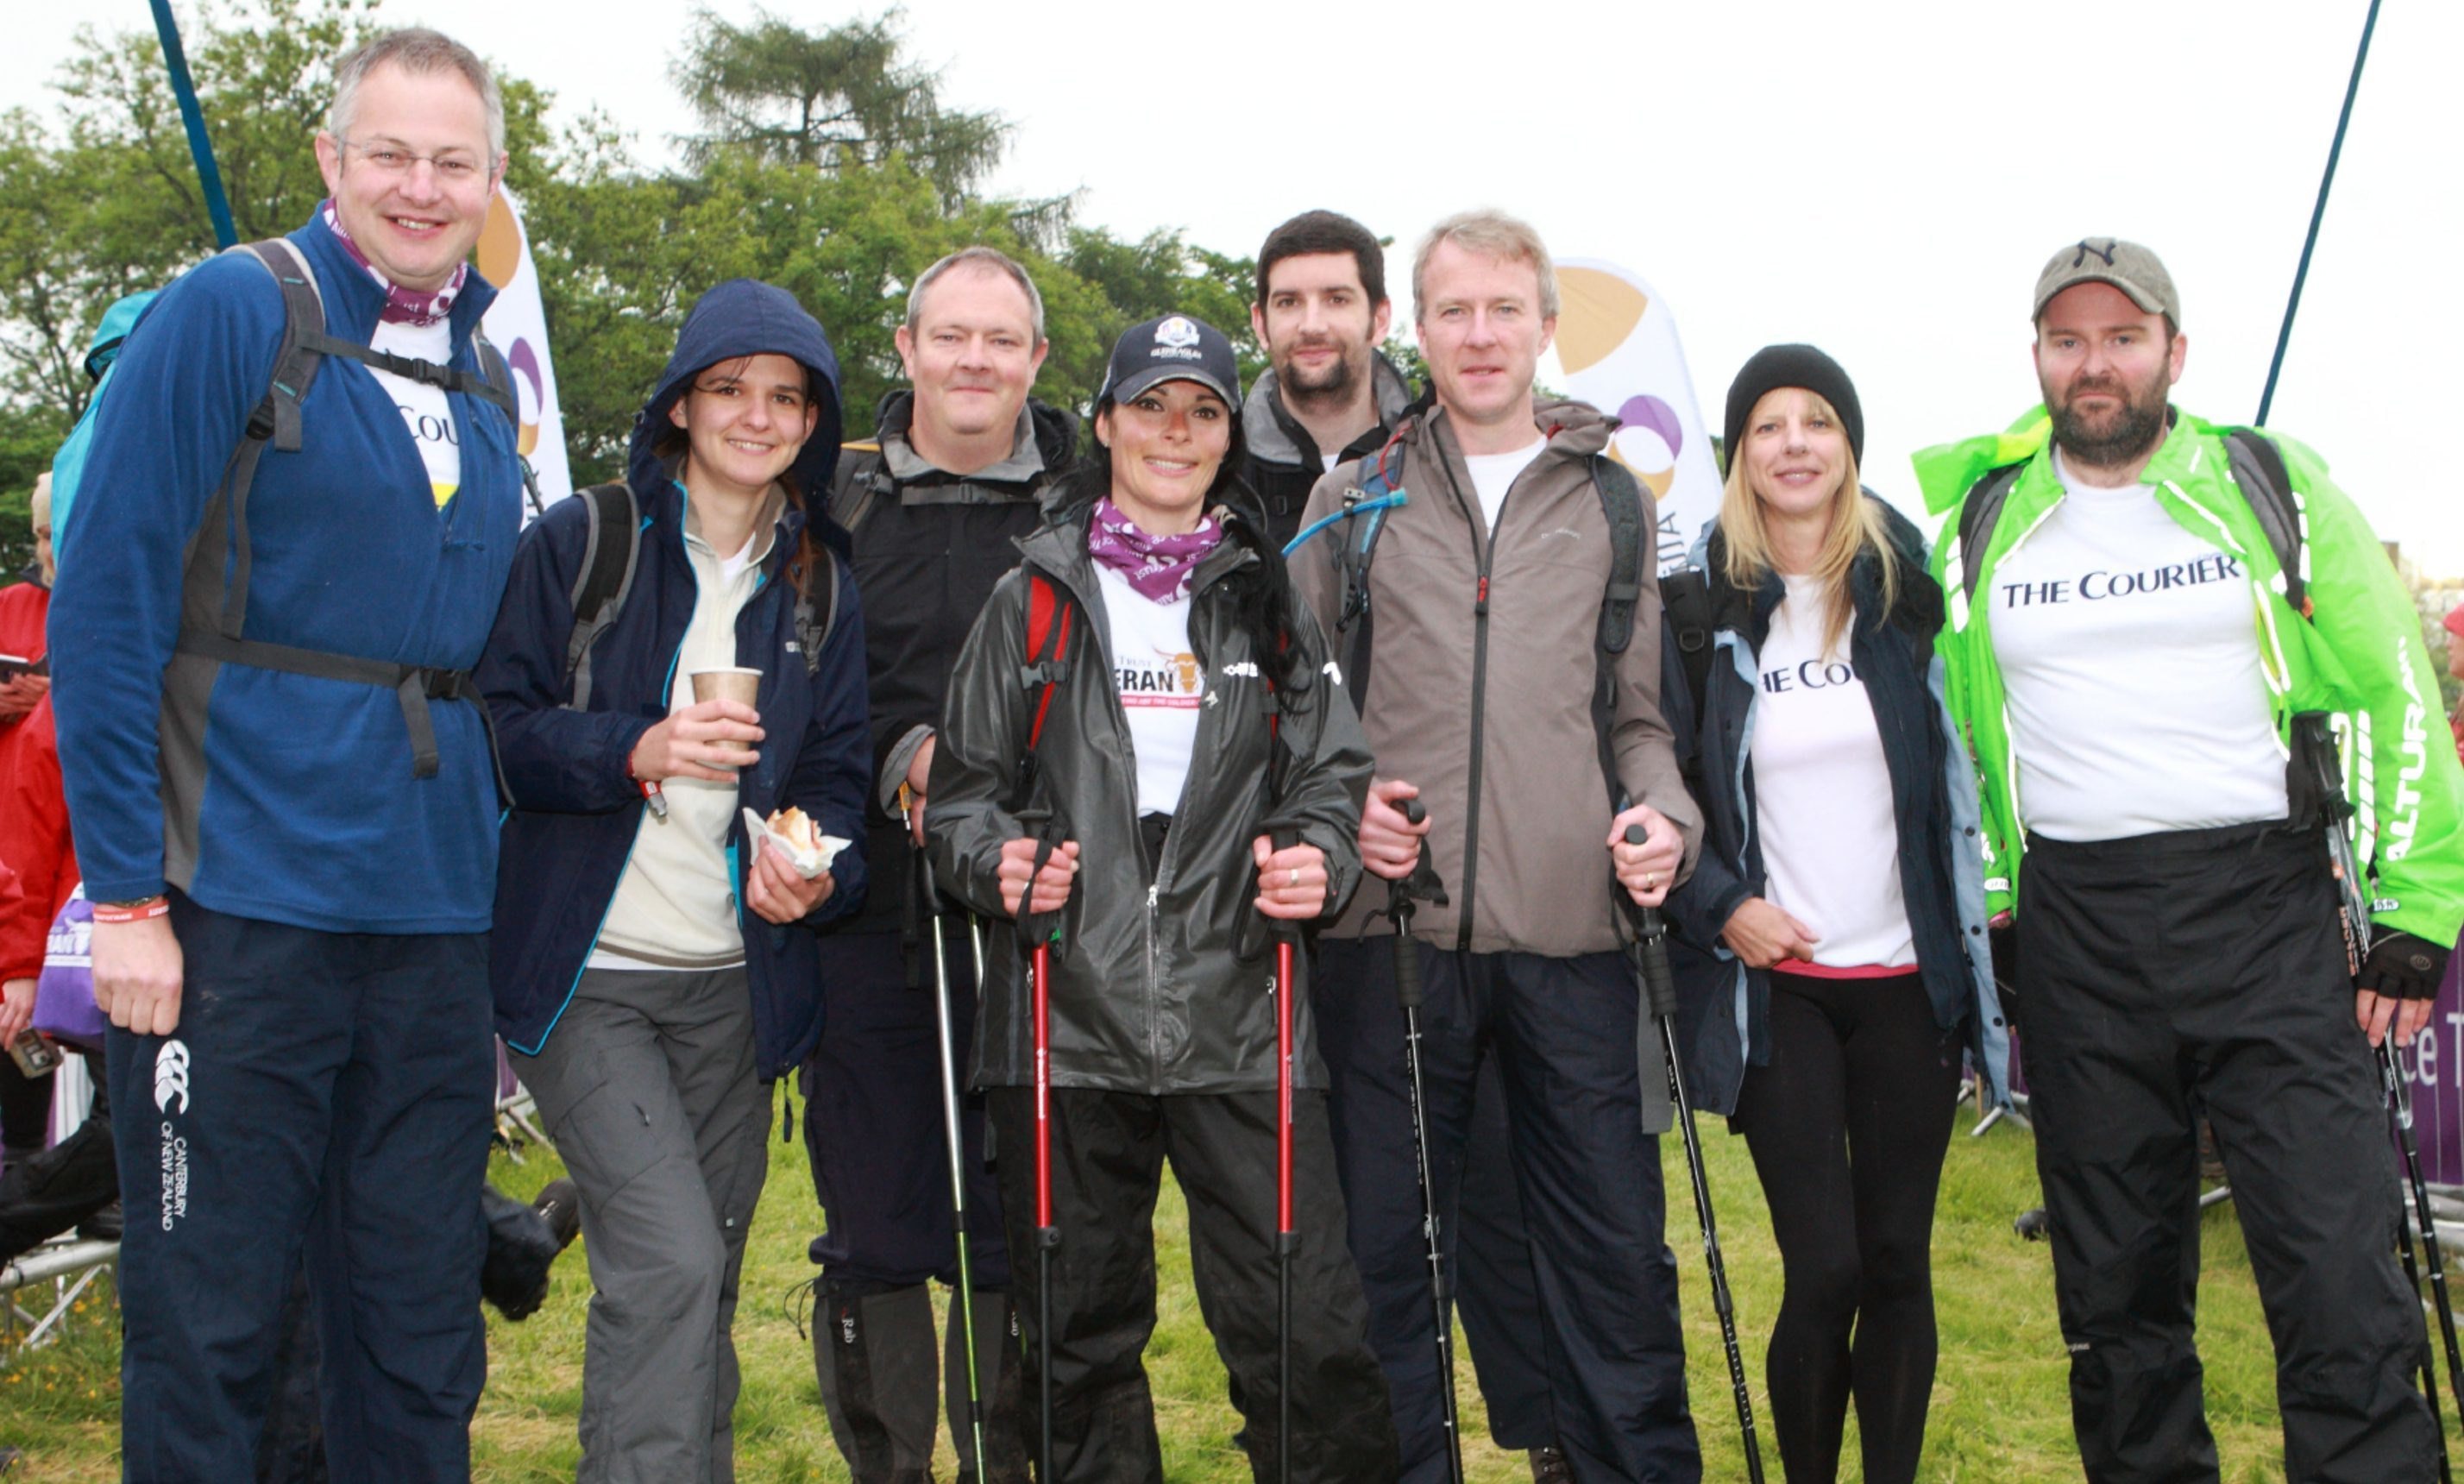 Team Courier at the Cateran Yomp starting line in Blairgowrie in 2016